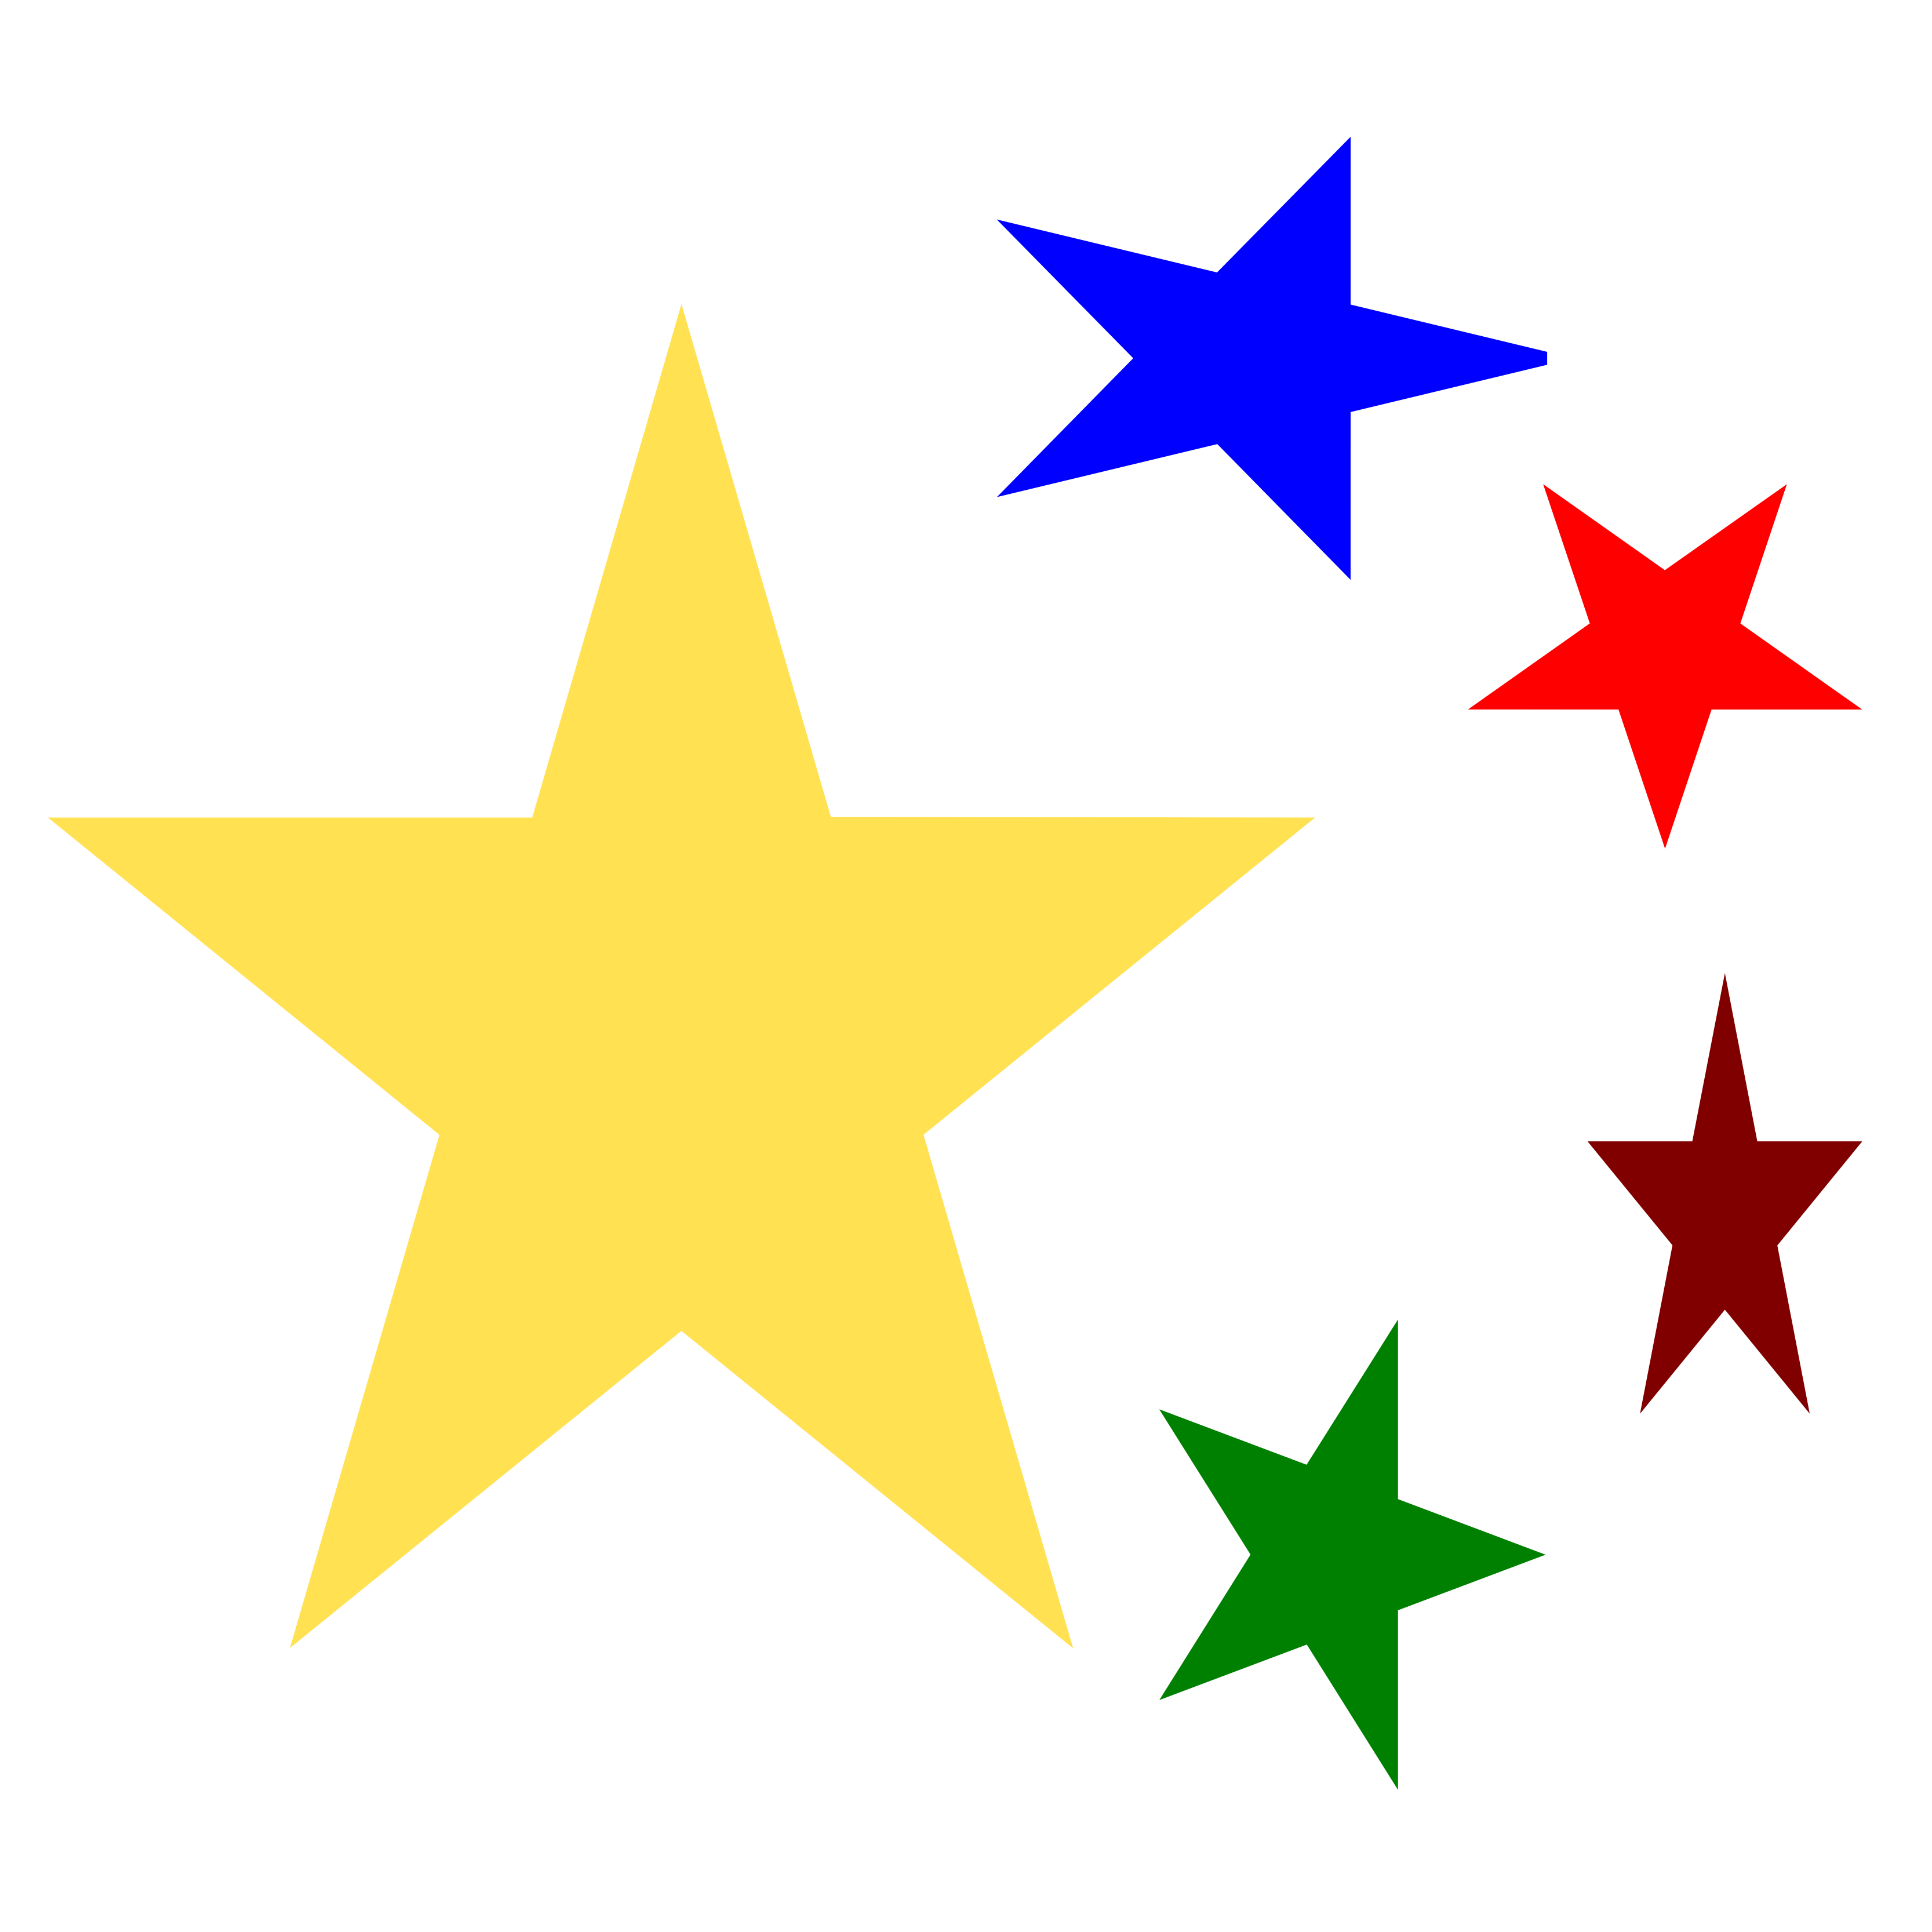 Christmas Stars Clipart Without Background.